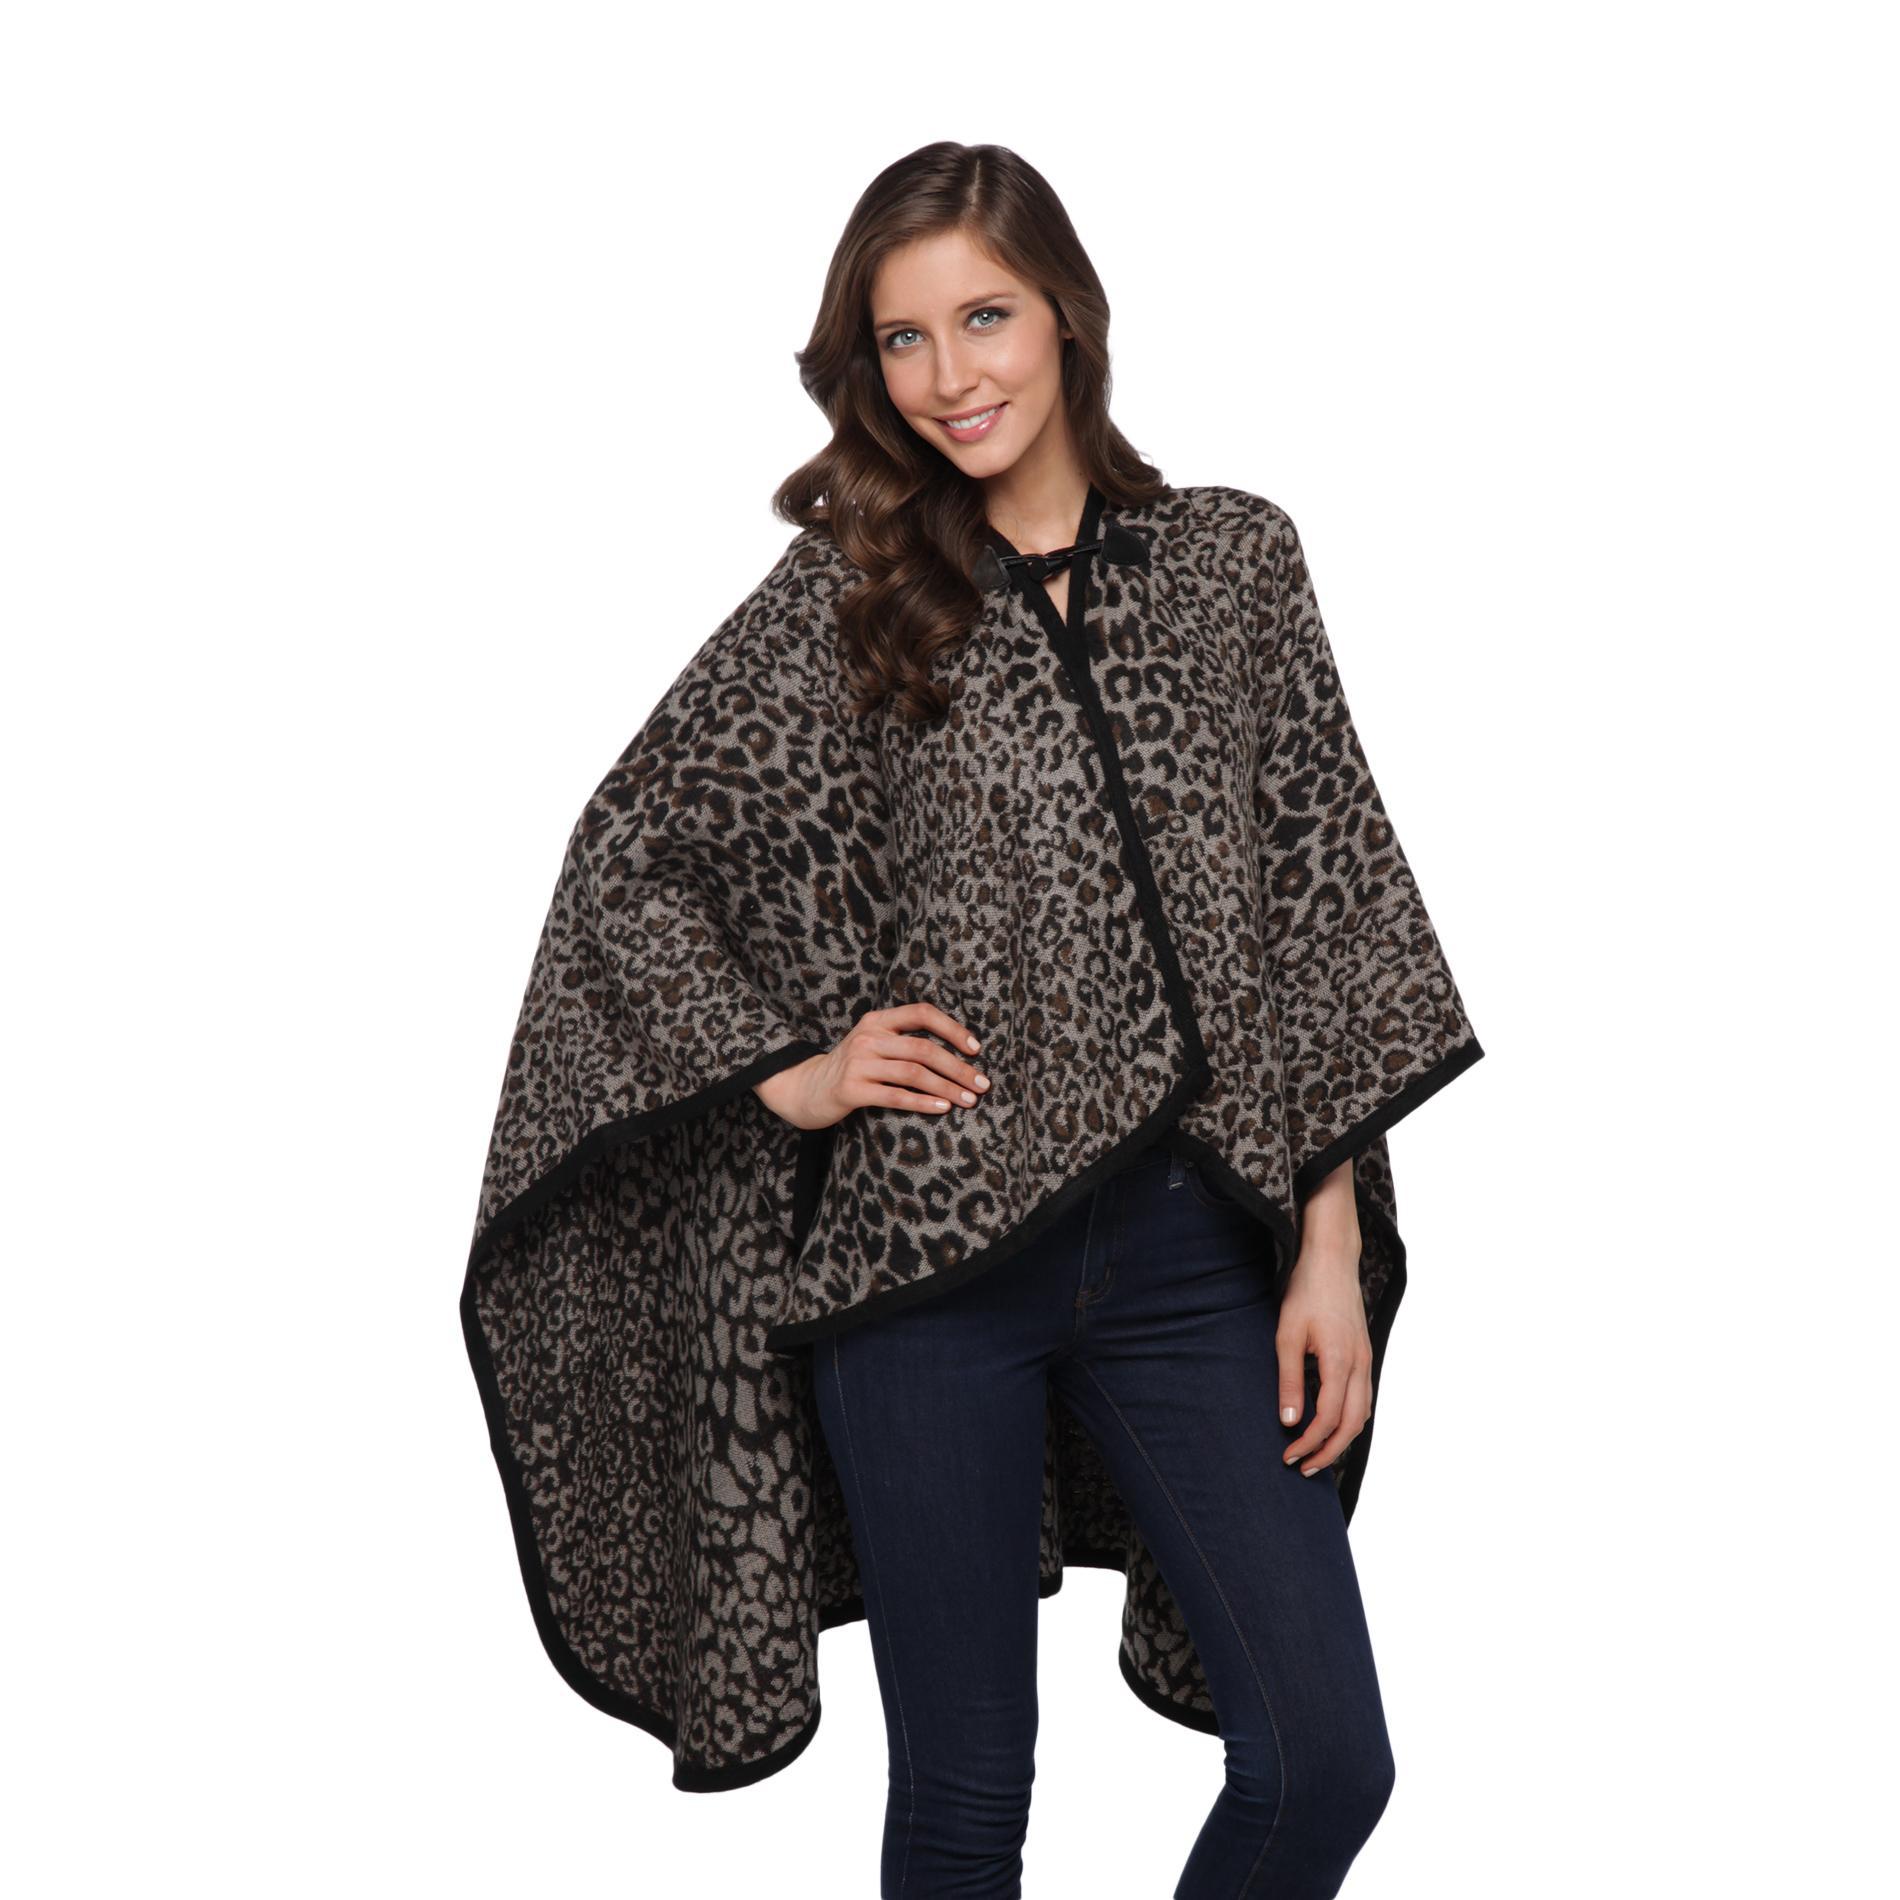 SMNY Women's Cape - Leopard Print at Sears.com